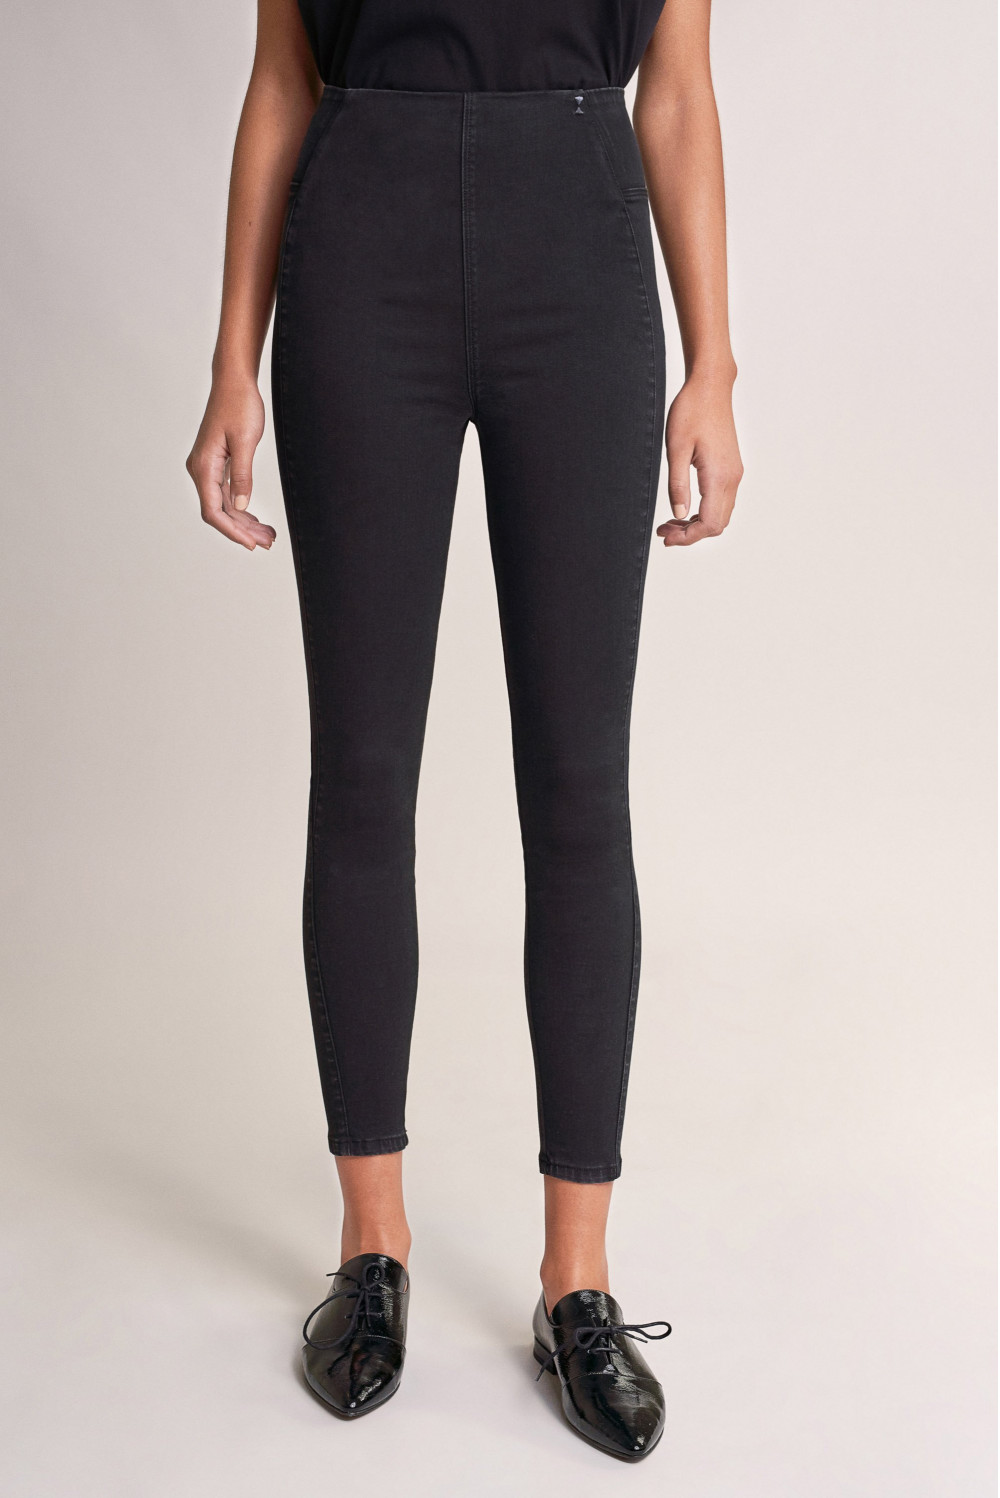 High-waisted black denim Jeggings